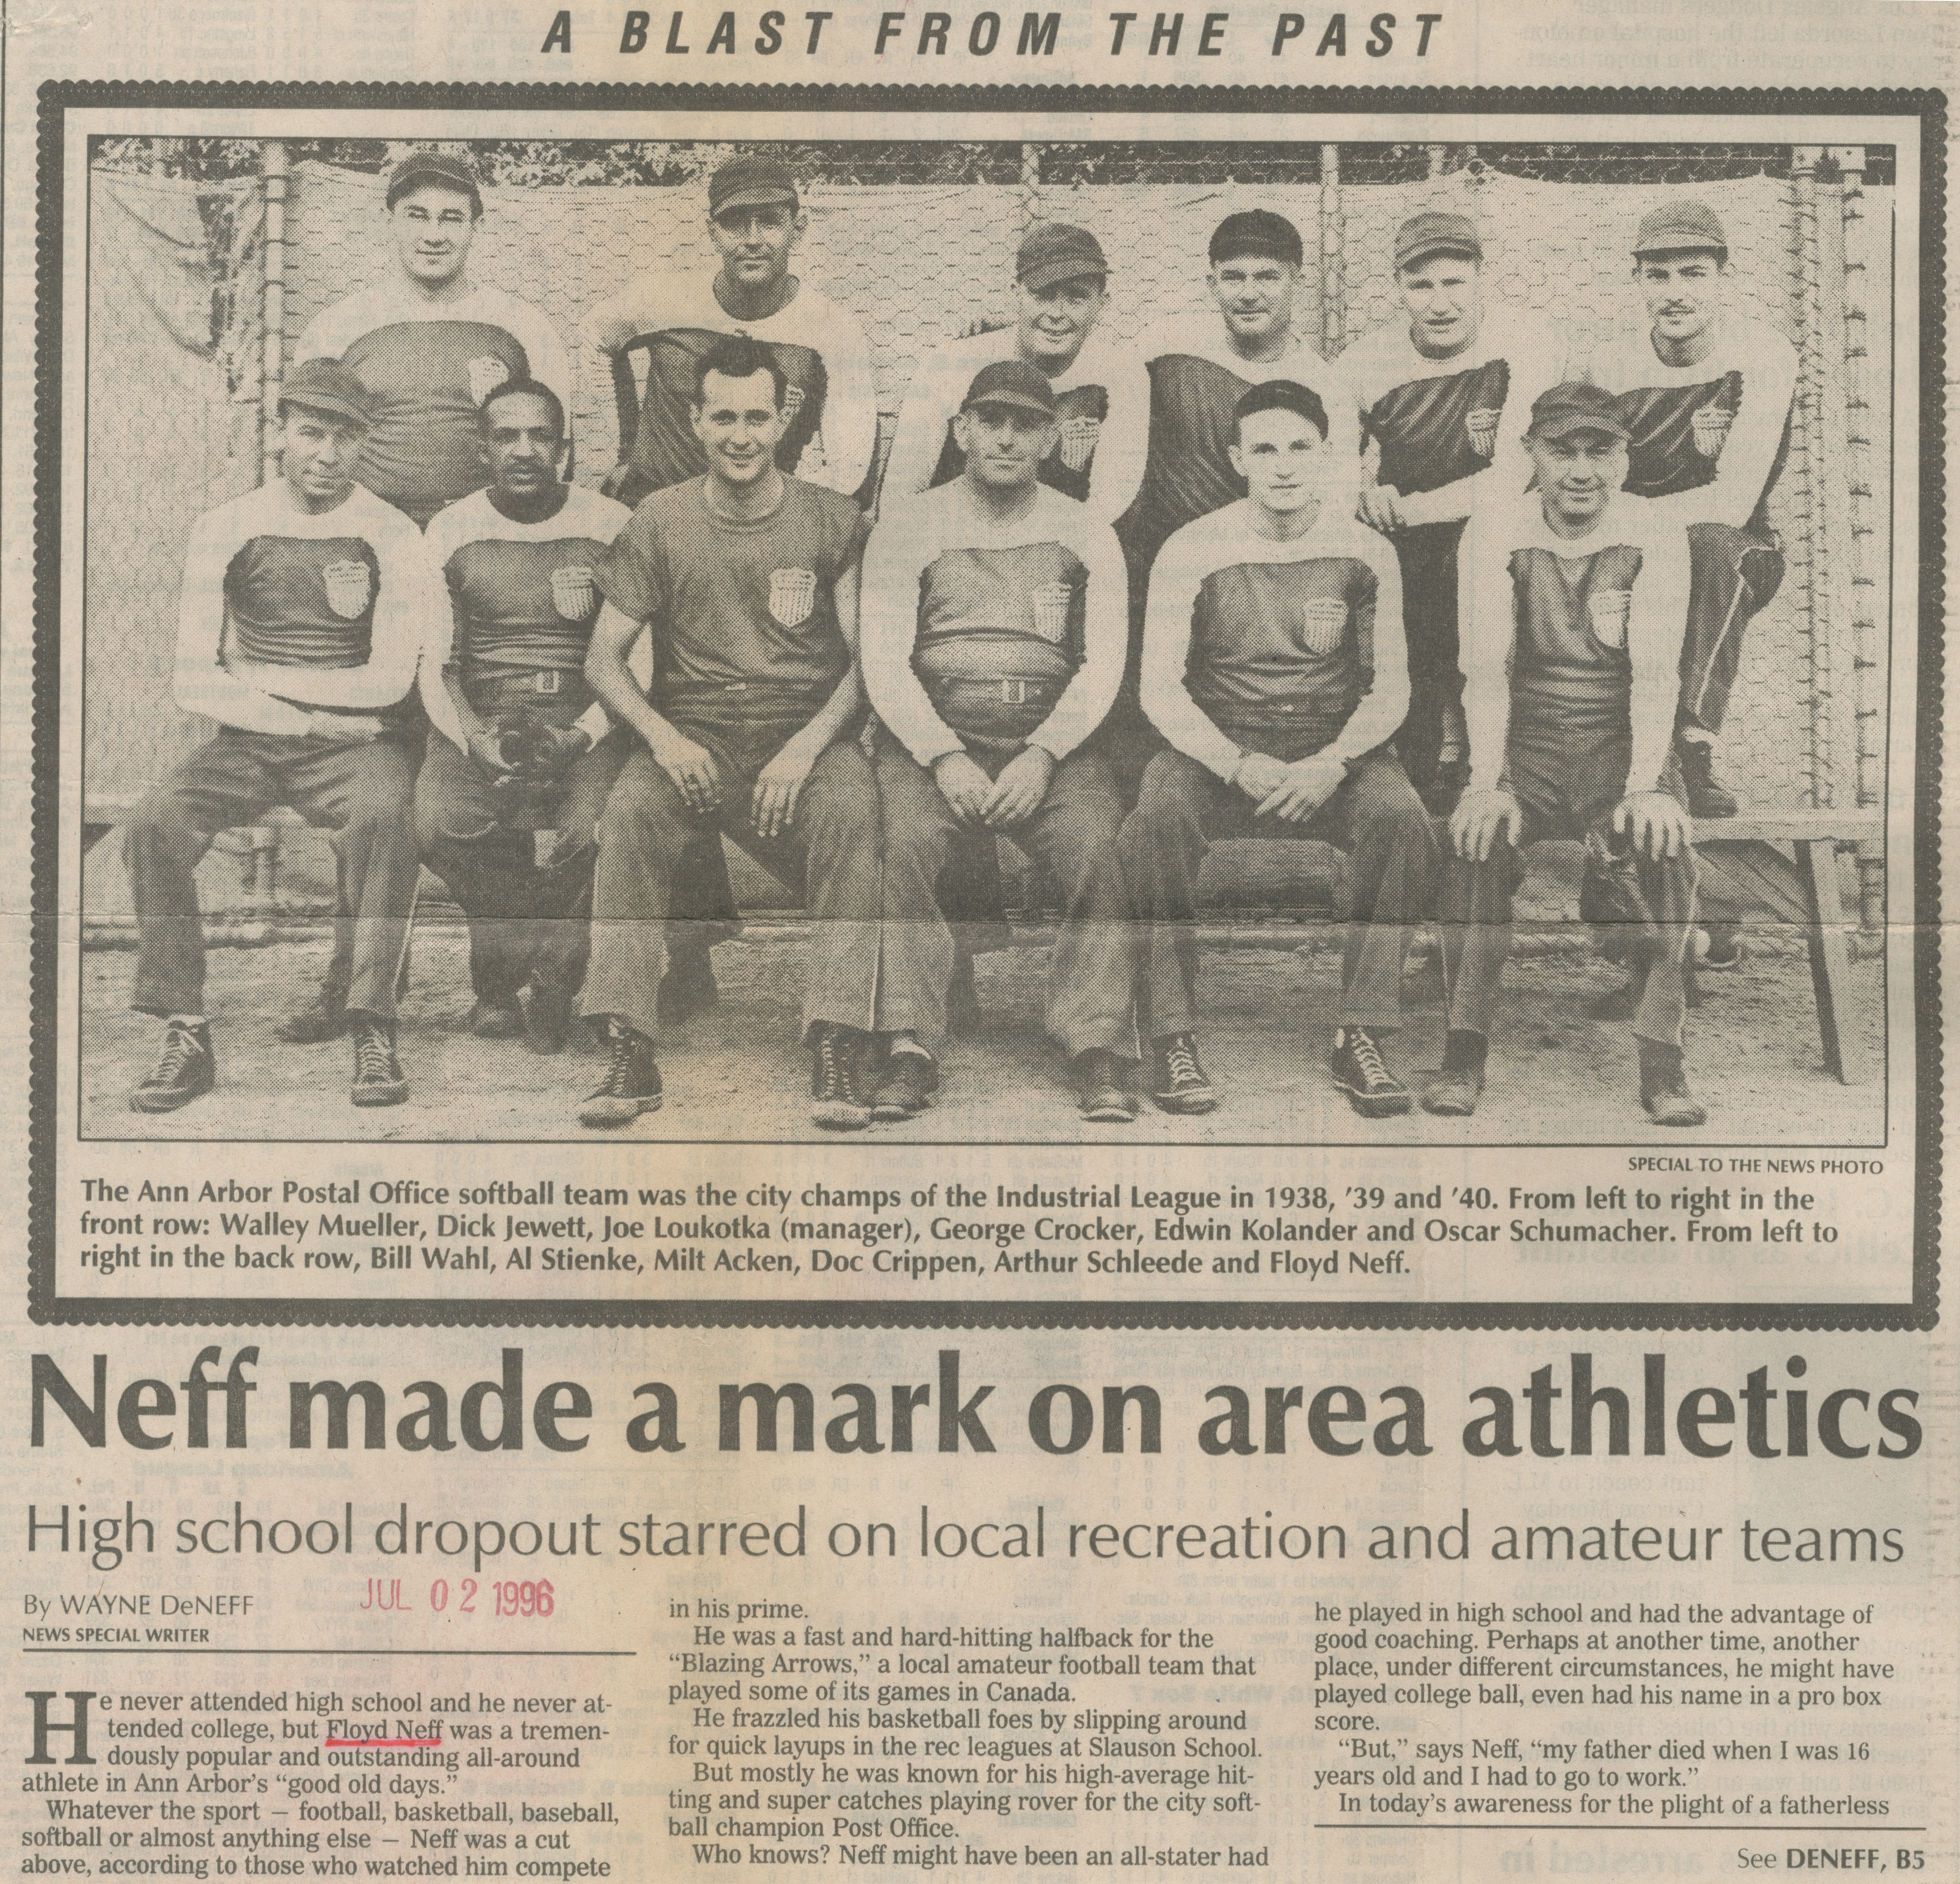 Neff Made A Mark On Area Athletics - A Blast From The Past image